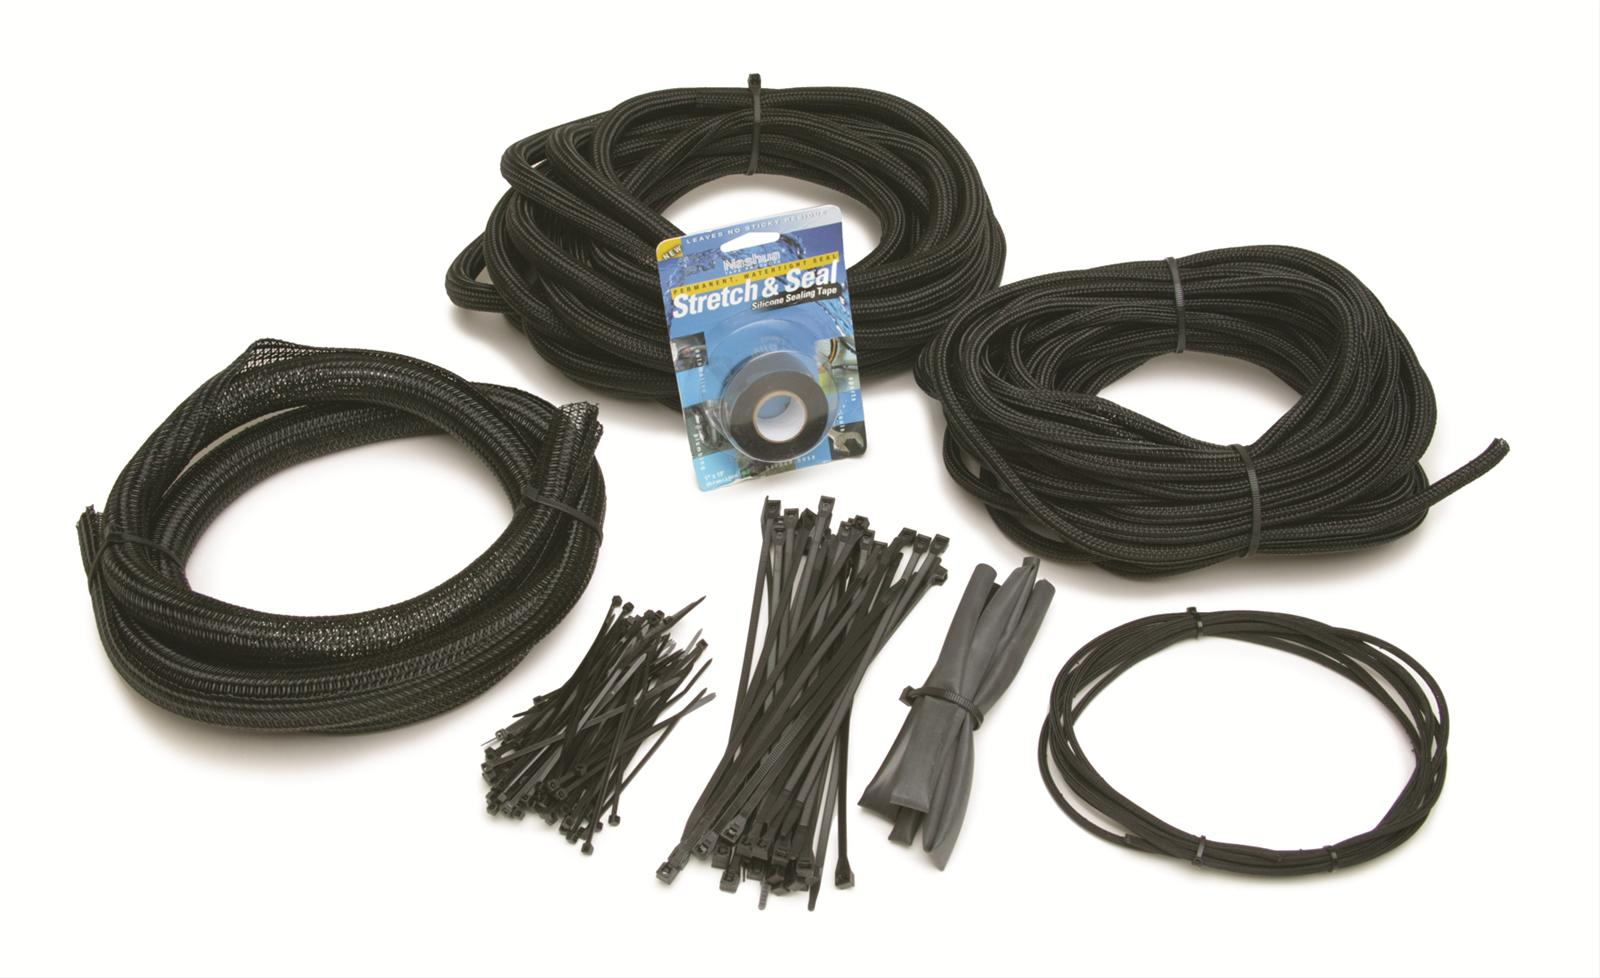 Painless Performance Powerbraid Chassis Harness Kits 70920 Free Wiring Shipping On Orders Over 99 At Summit Racing